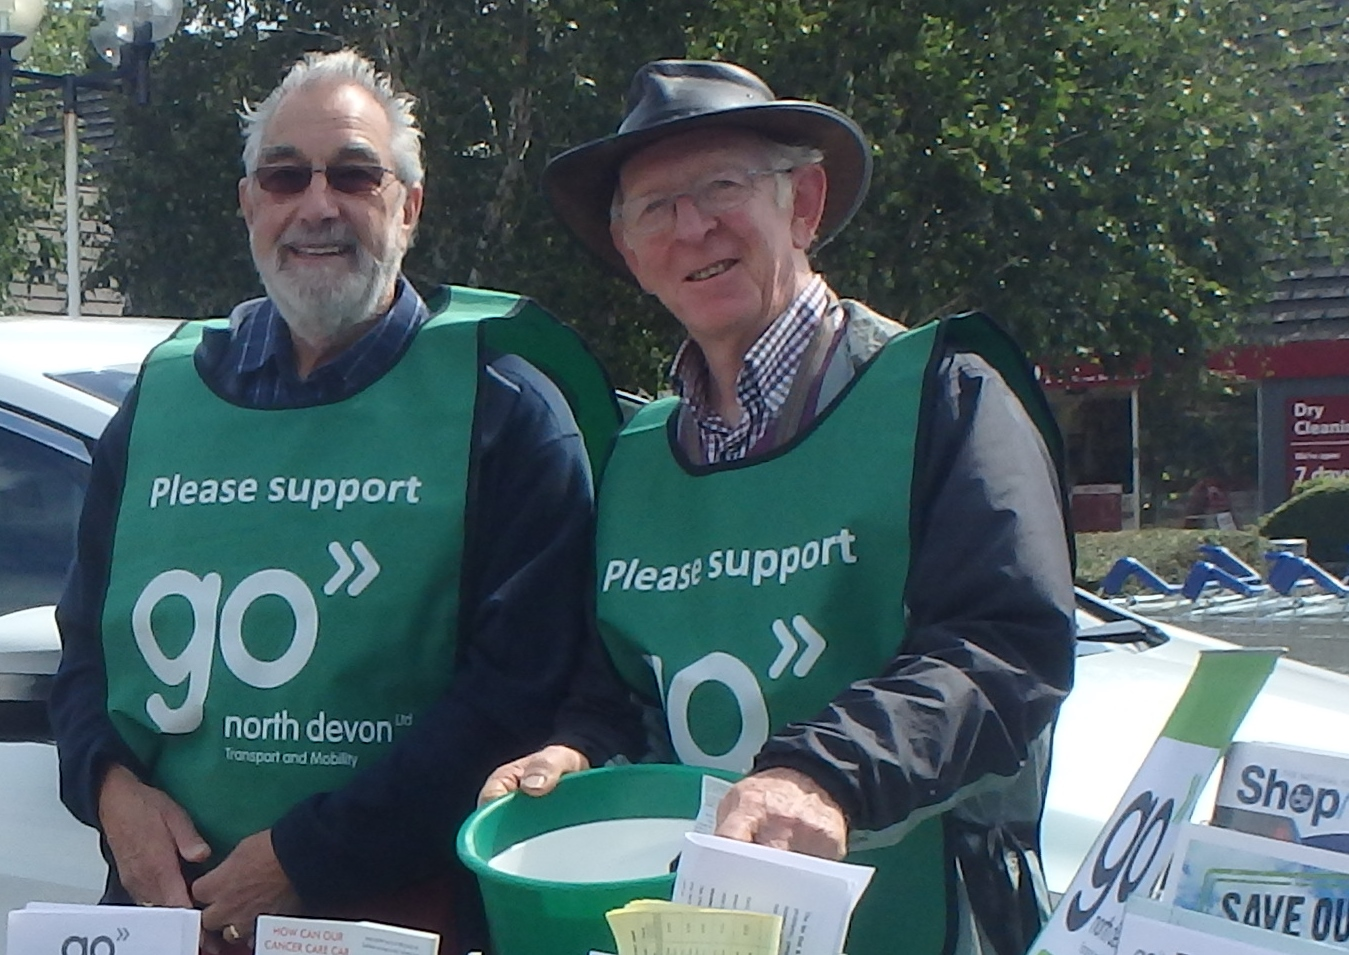 A group photo of Go North Devon volunteers holding collection buckets.